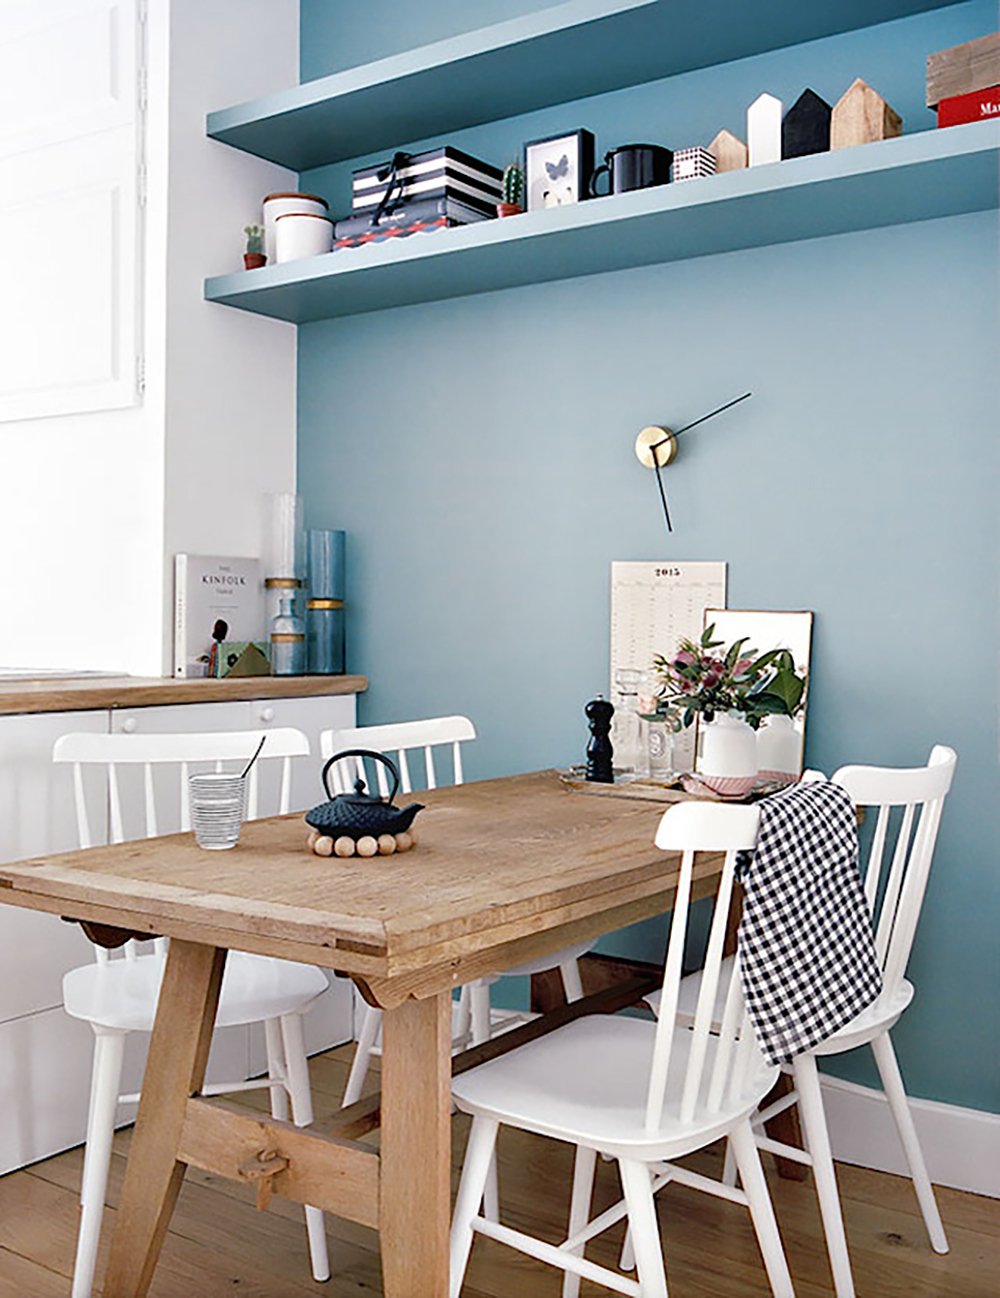 35 ideas for blue wall colour in home decoration - Aliz\'s ...